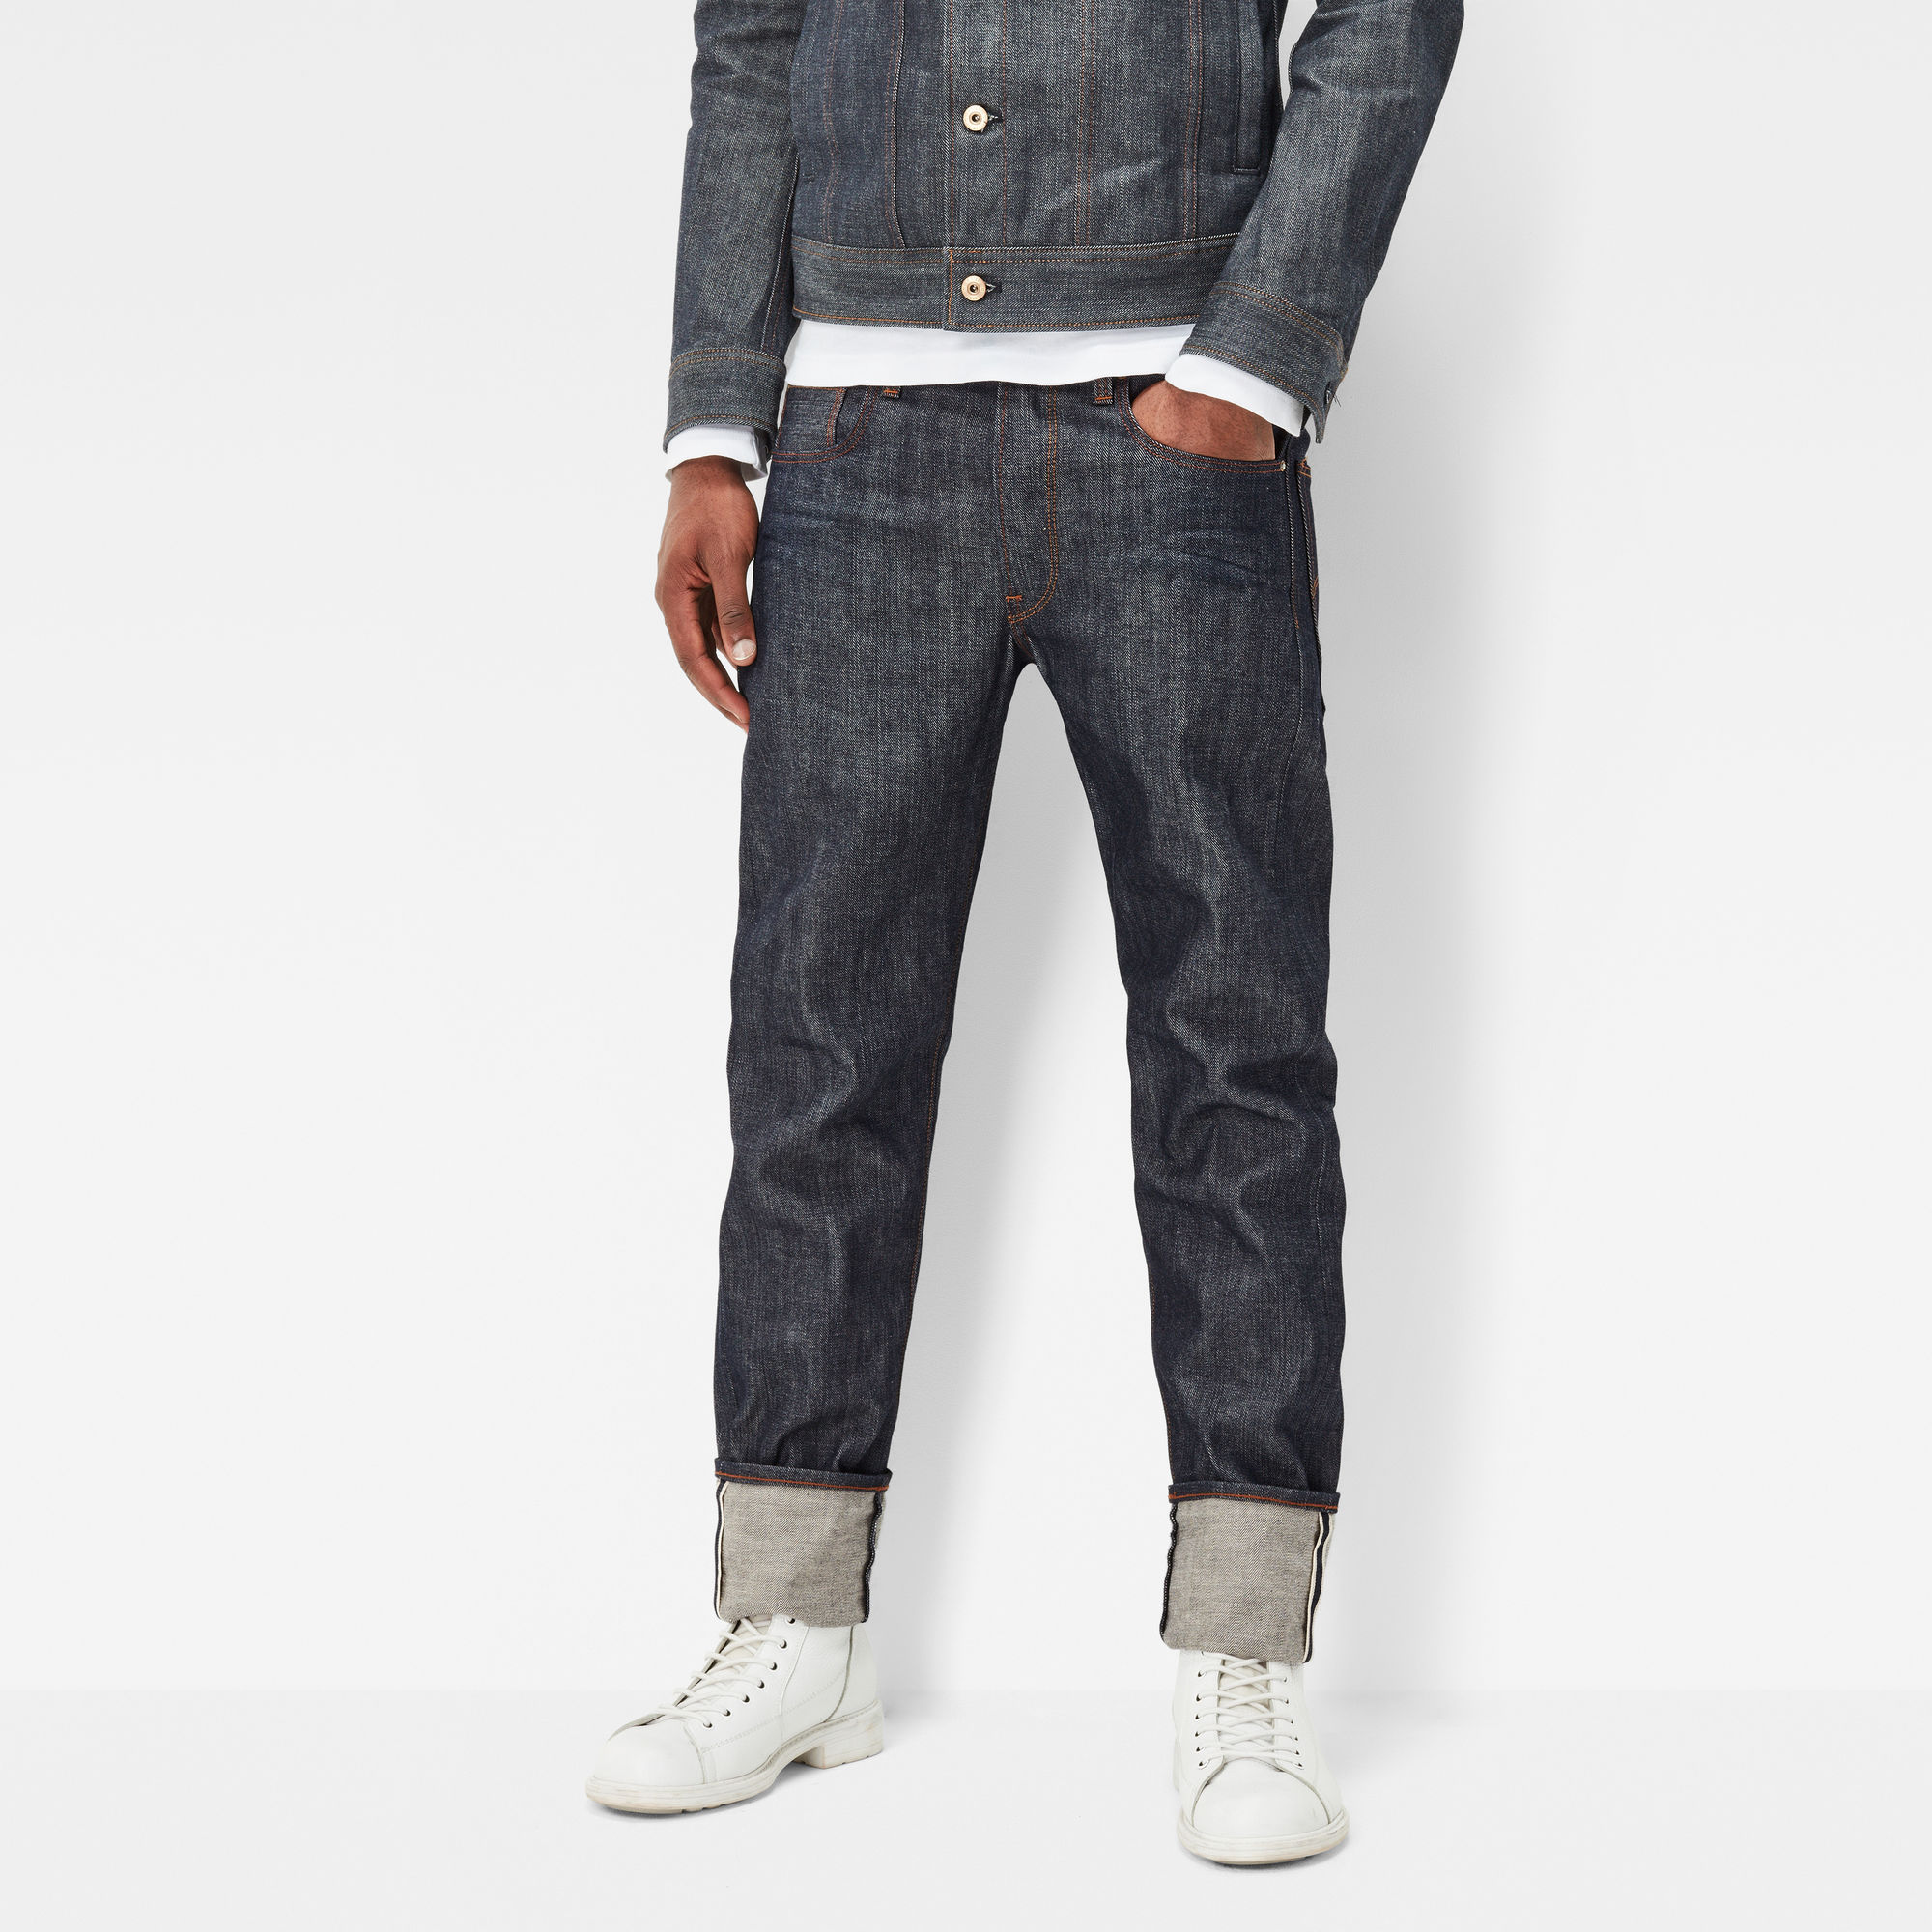 Raw Essentials US First Tapered Jeans